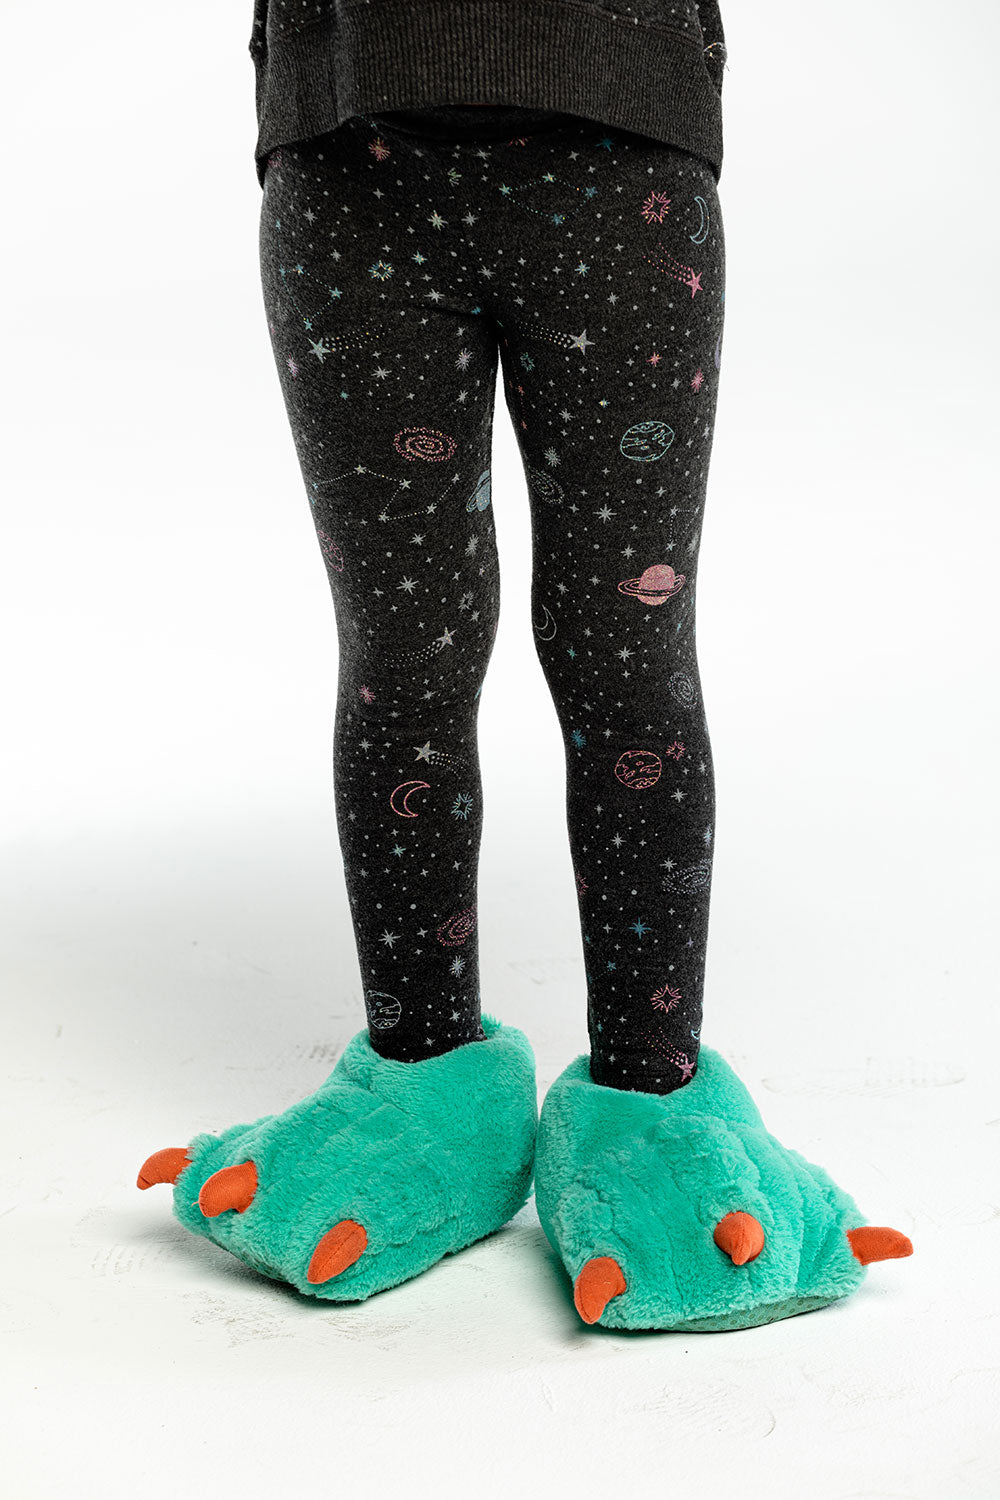 Constellation Leggings GIRLS chaserbrand4.myshopify.com